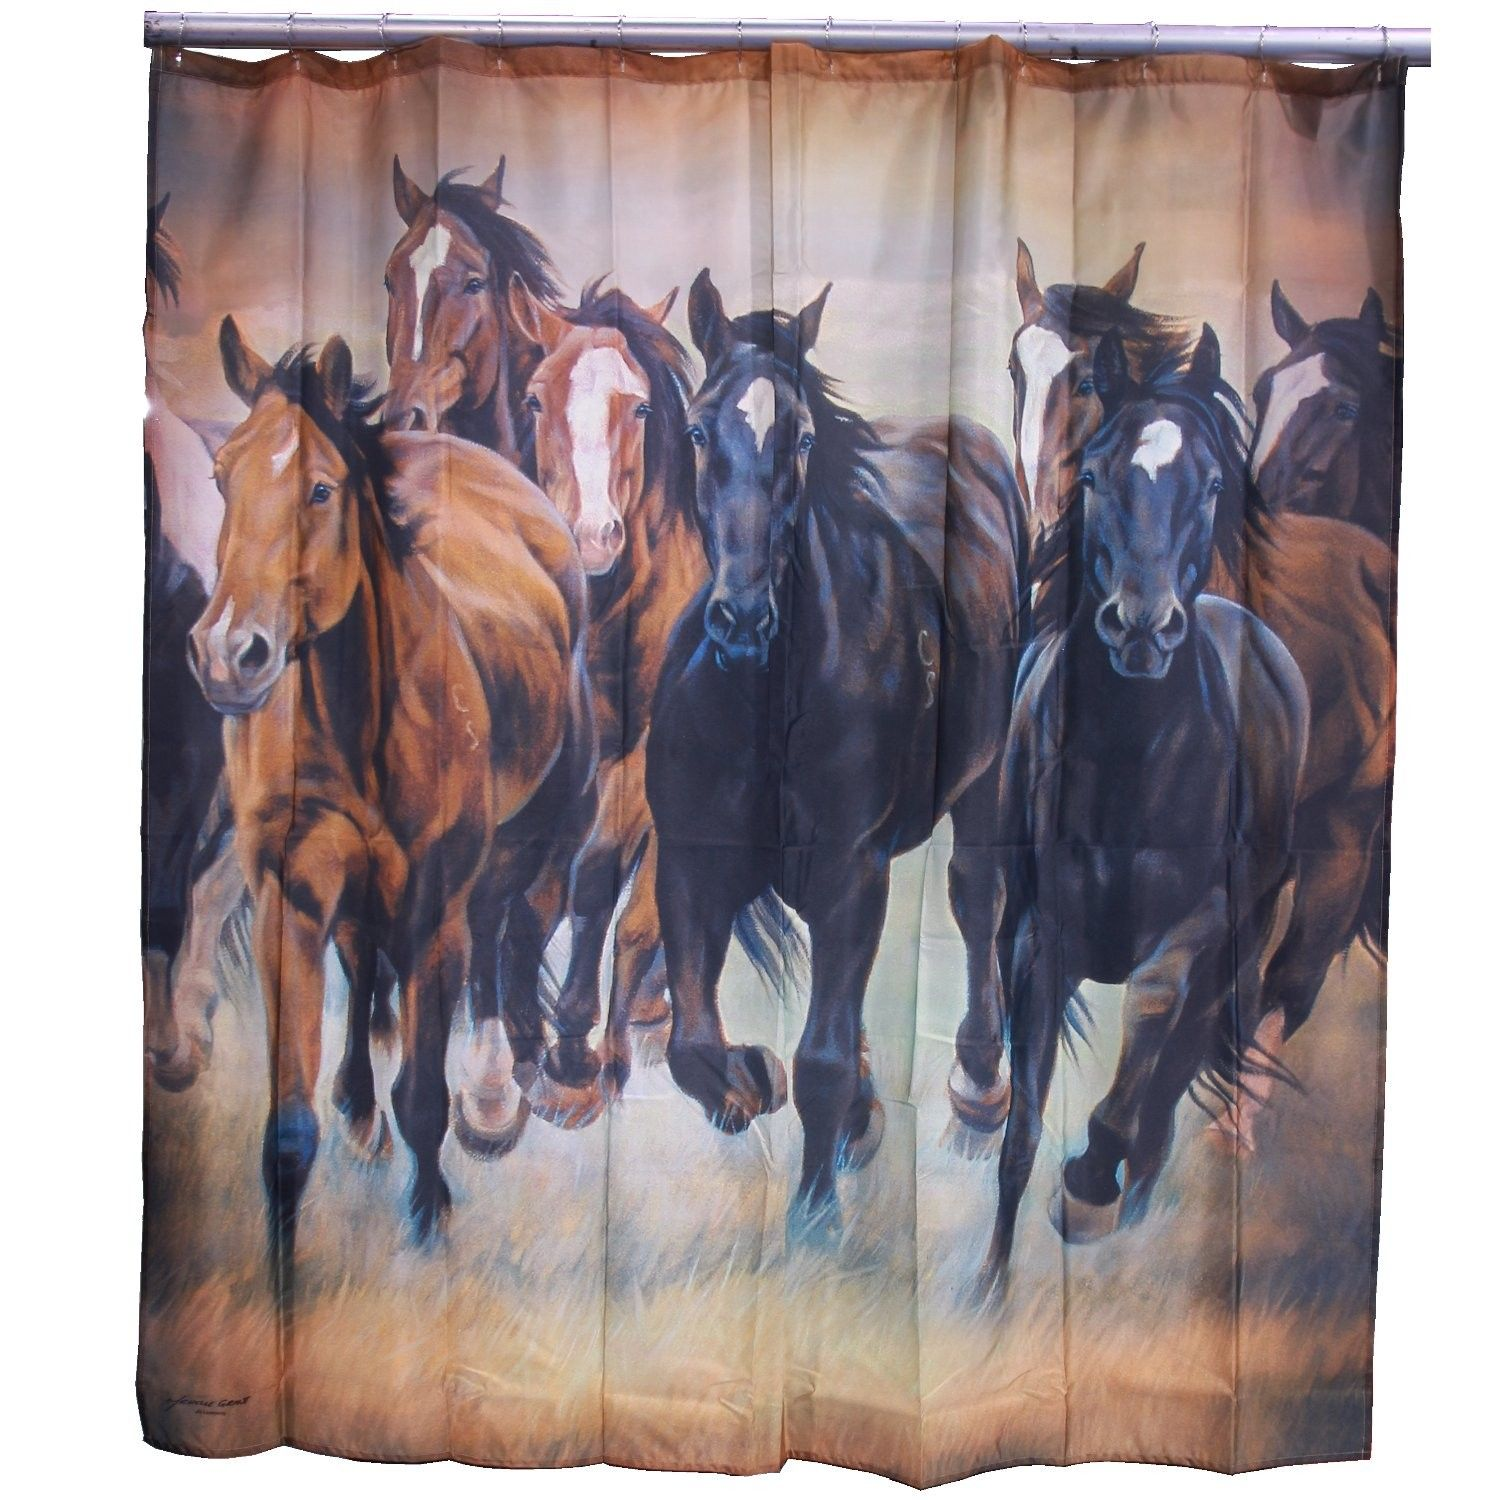 Horse Single Shower Curtain Horses Curtains Wild Mustangs